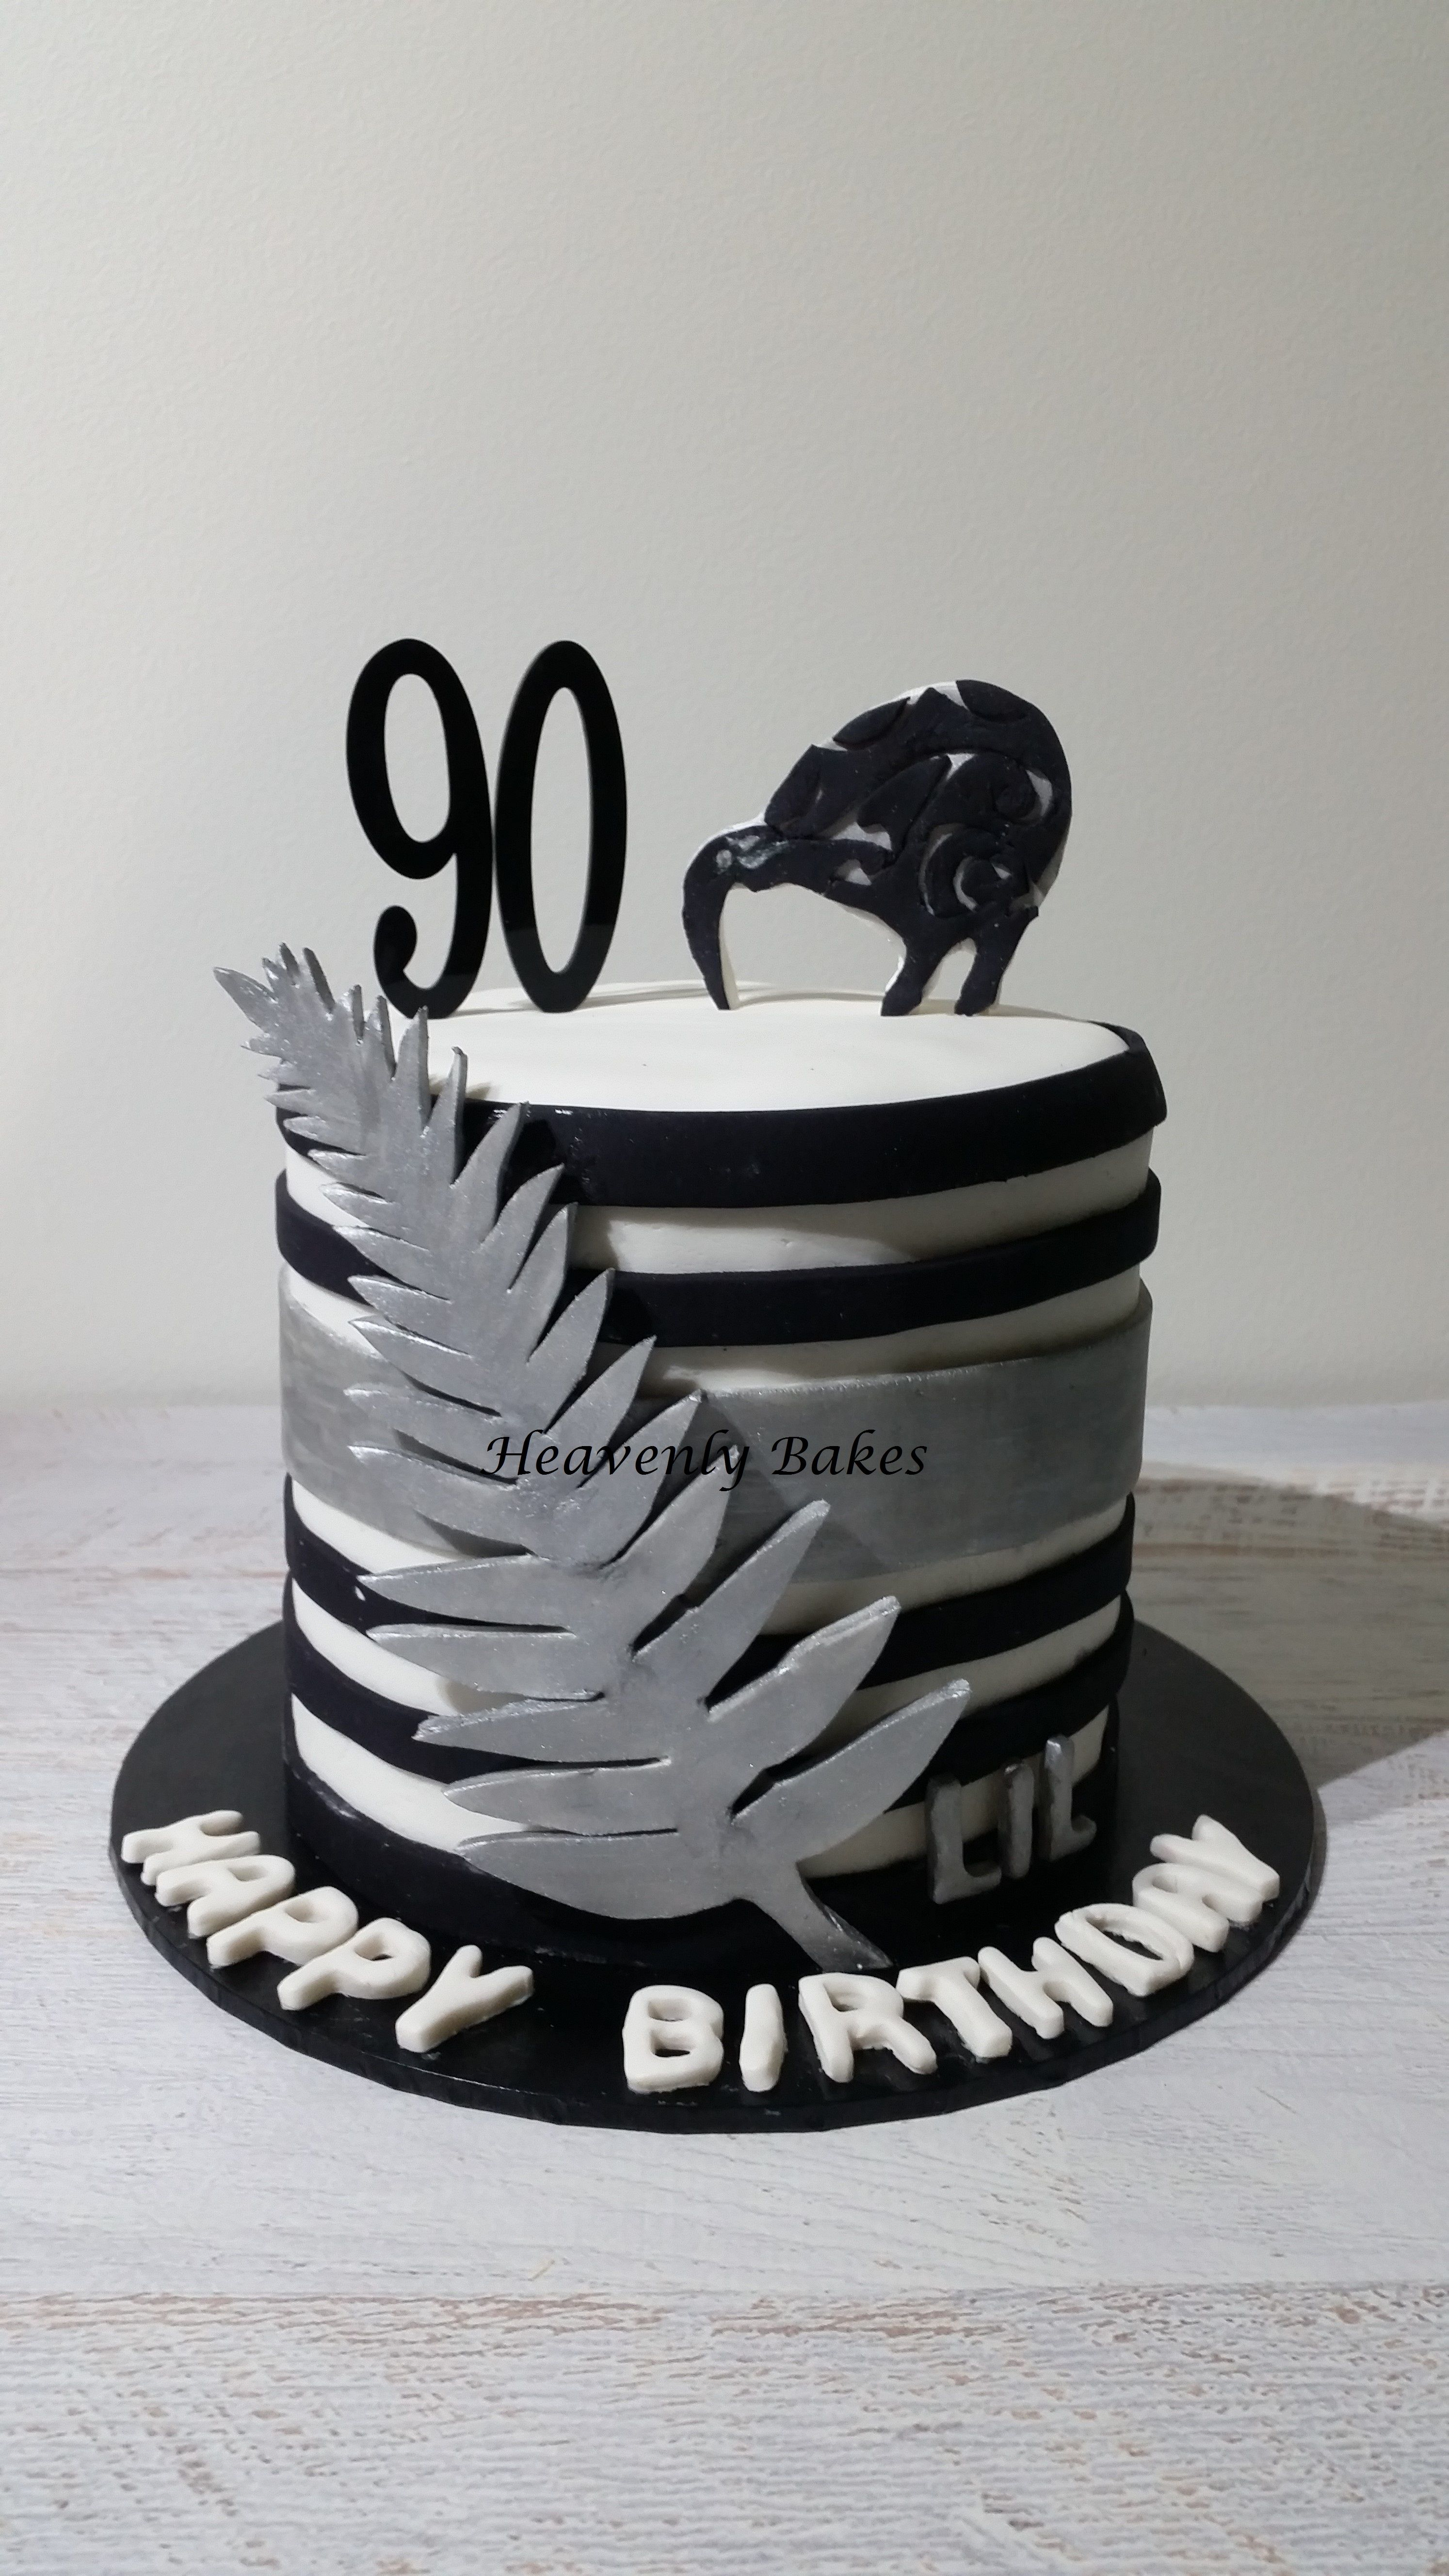 90th Birthday Cake New Zealand Themed Lemon With White Chocolate Ganache Layers Topped A Kiwi Bird And Silver Fern